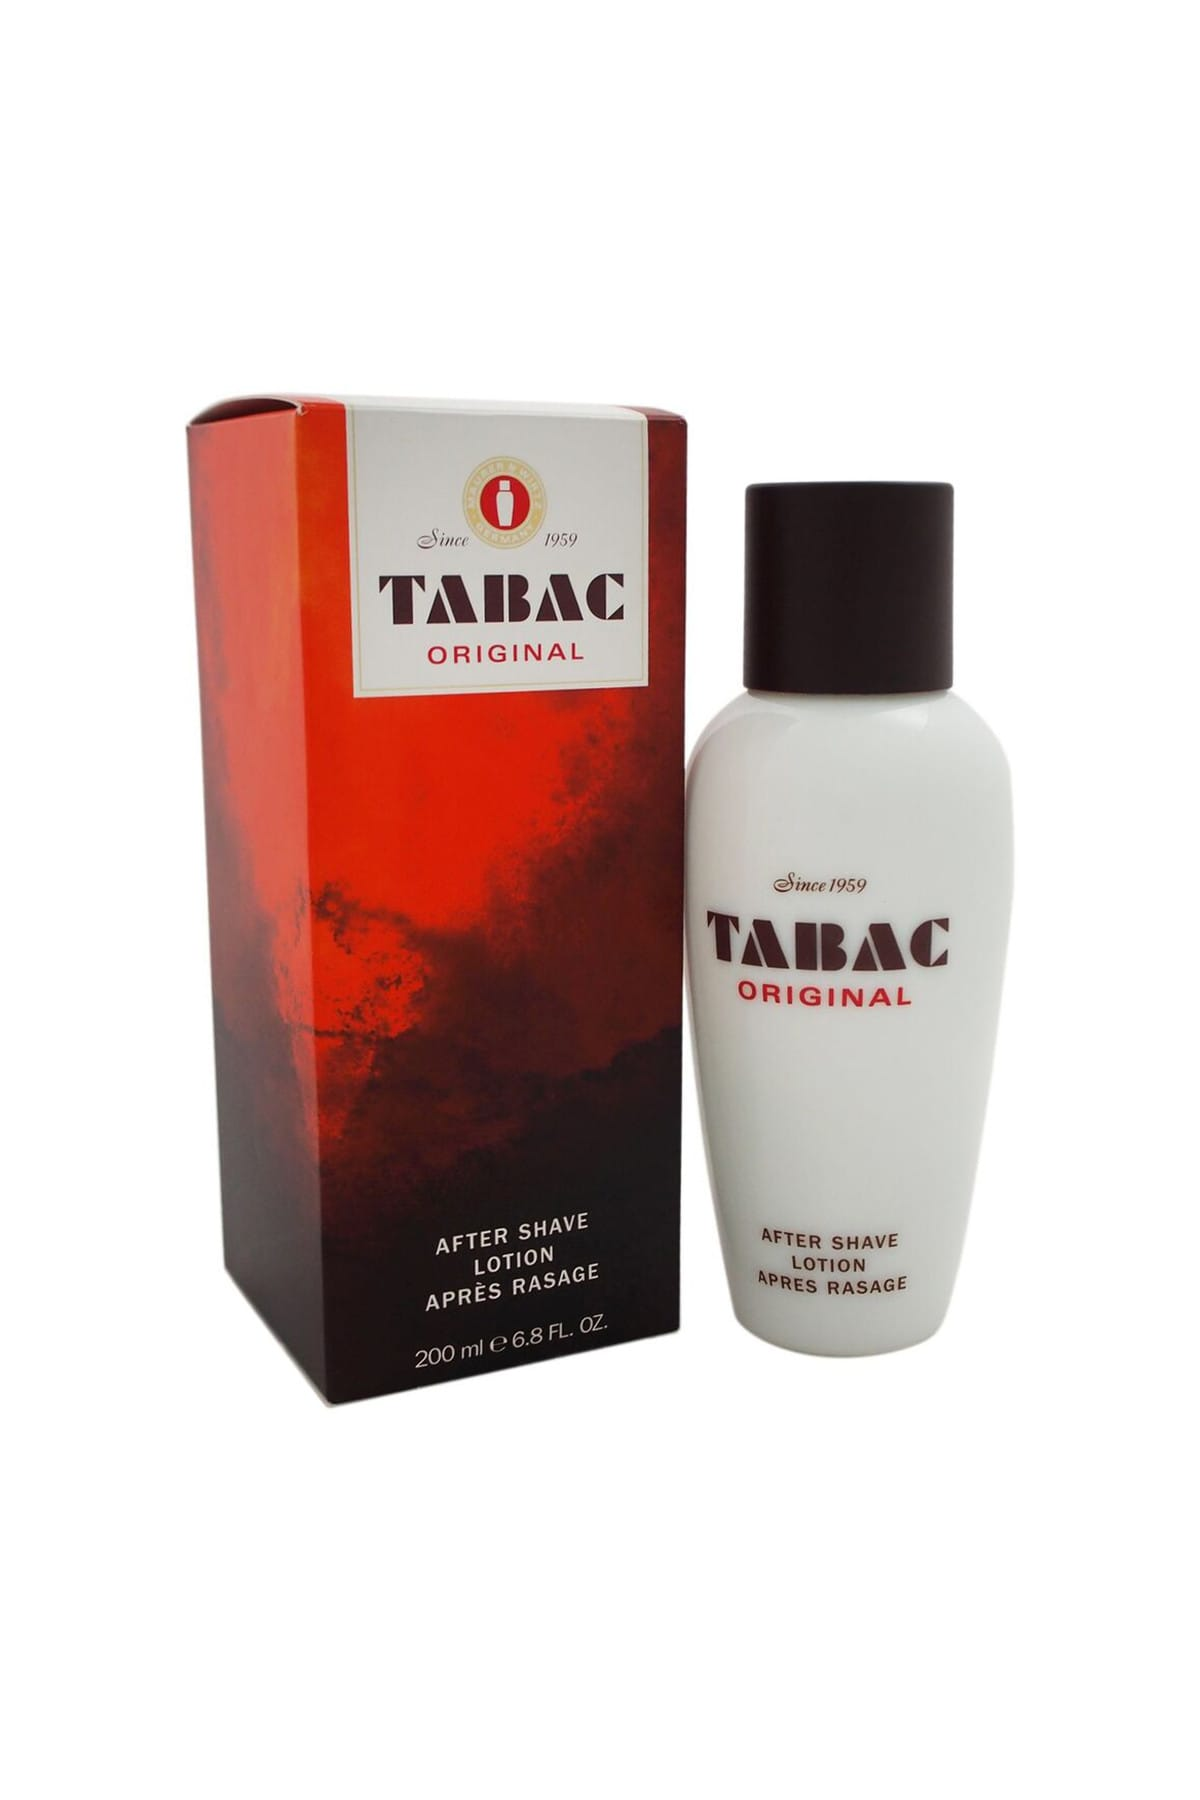 Tabac Tabac Original After Shave Lotion 200ml